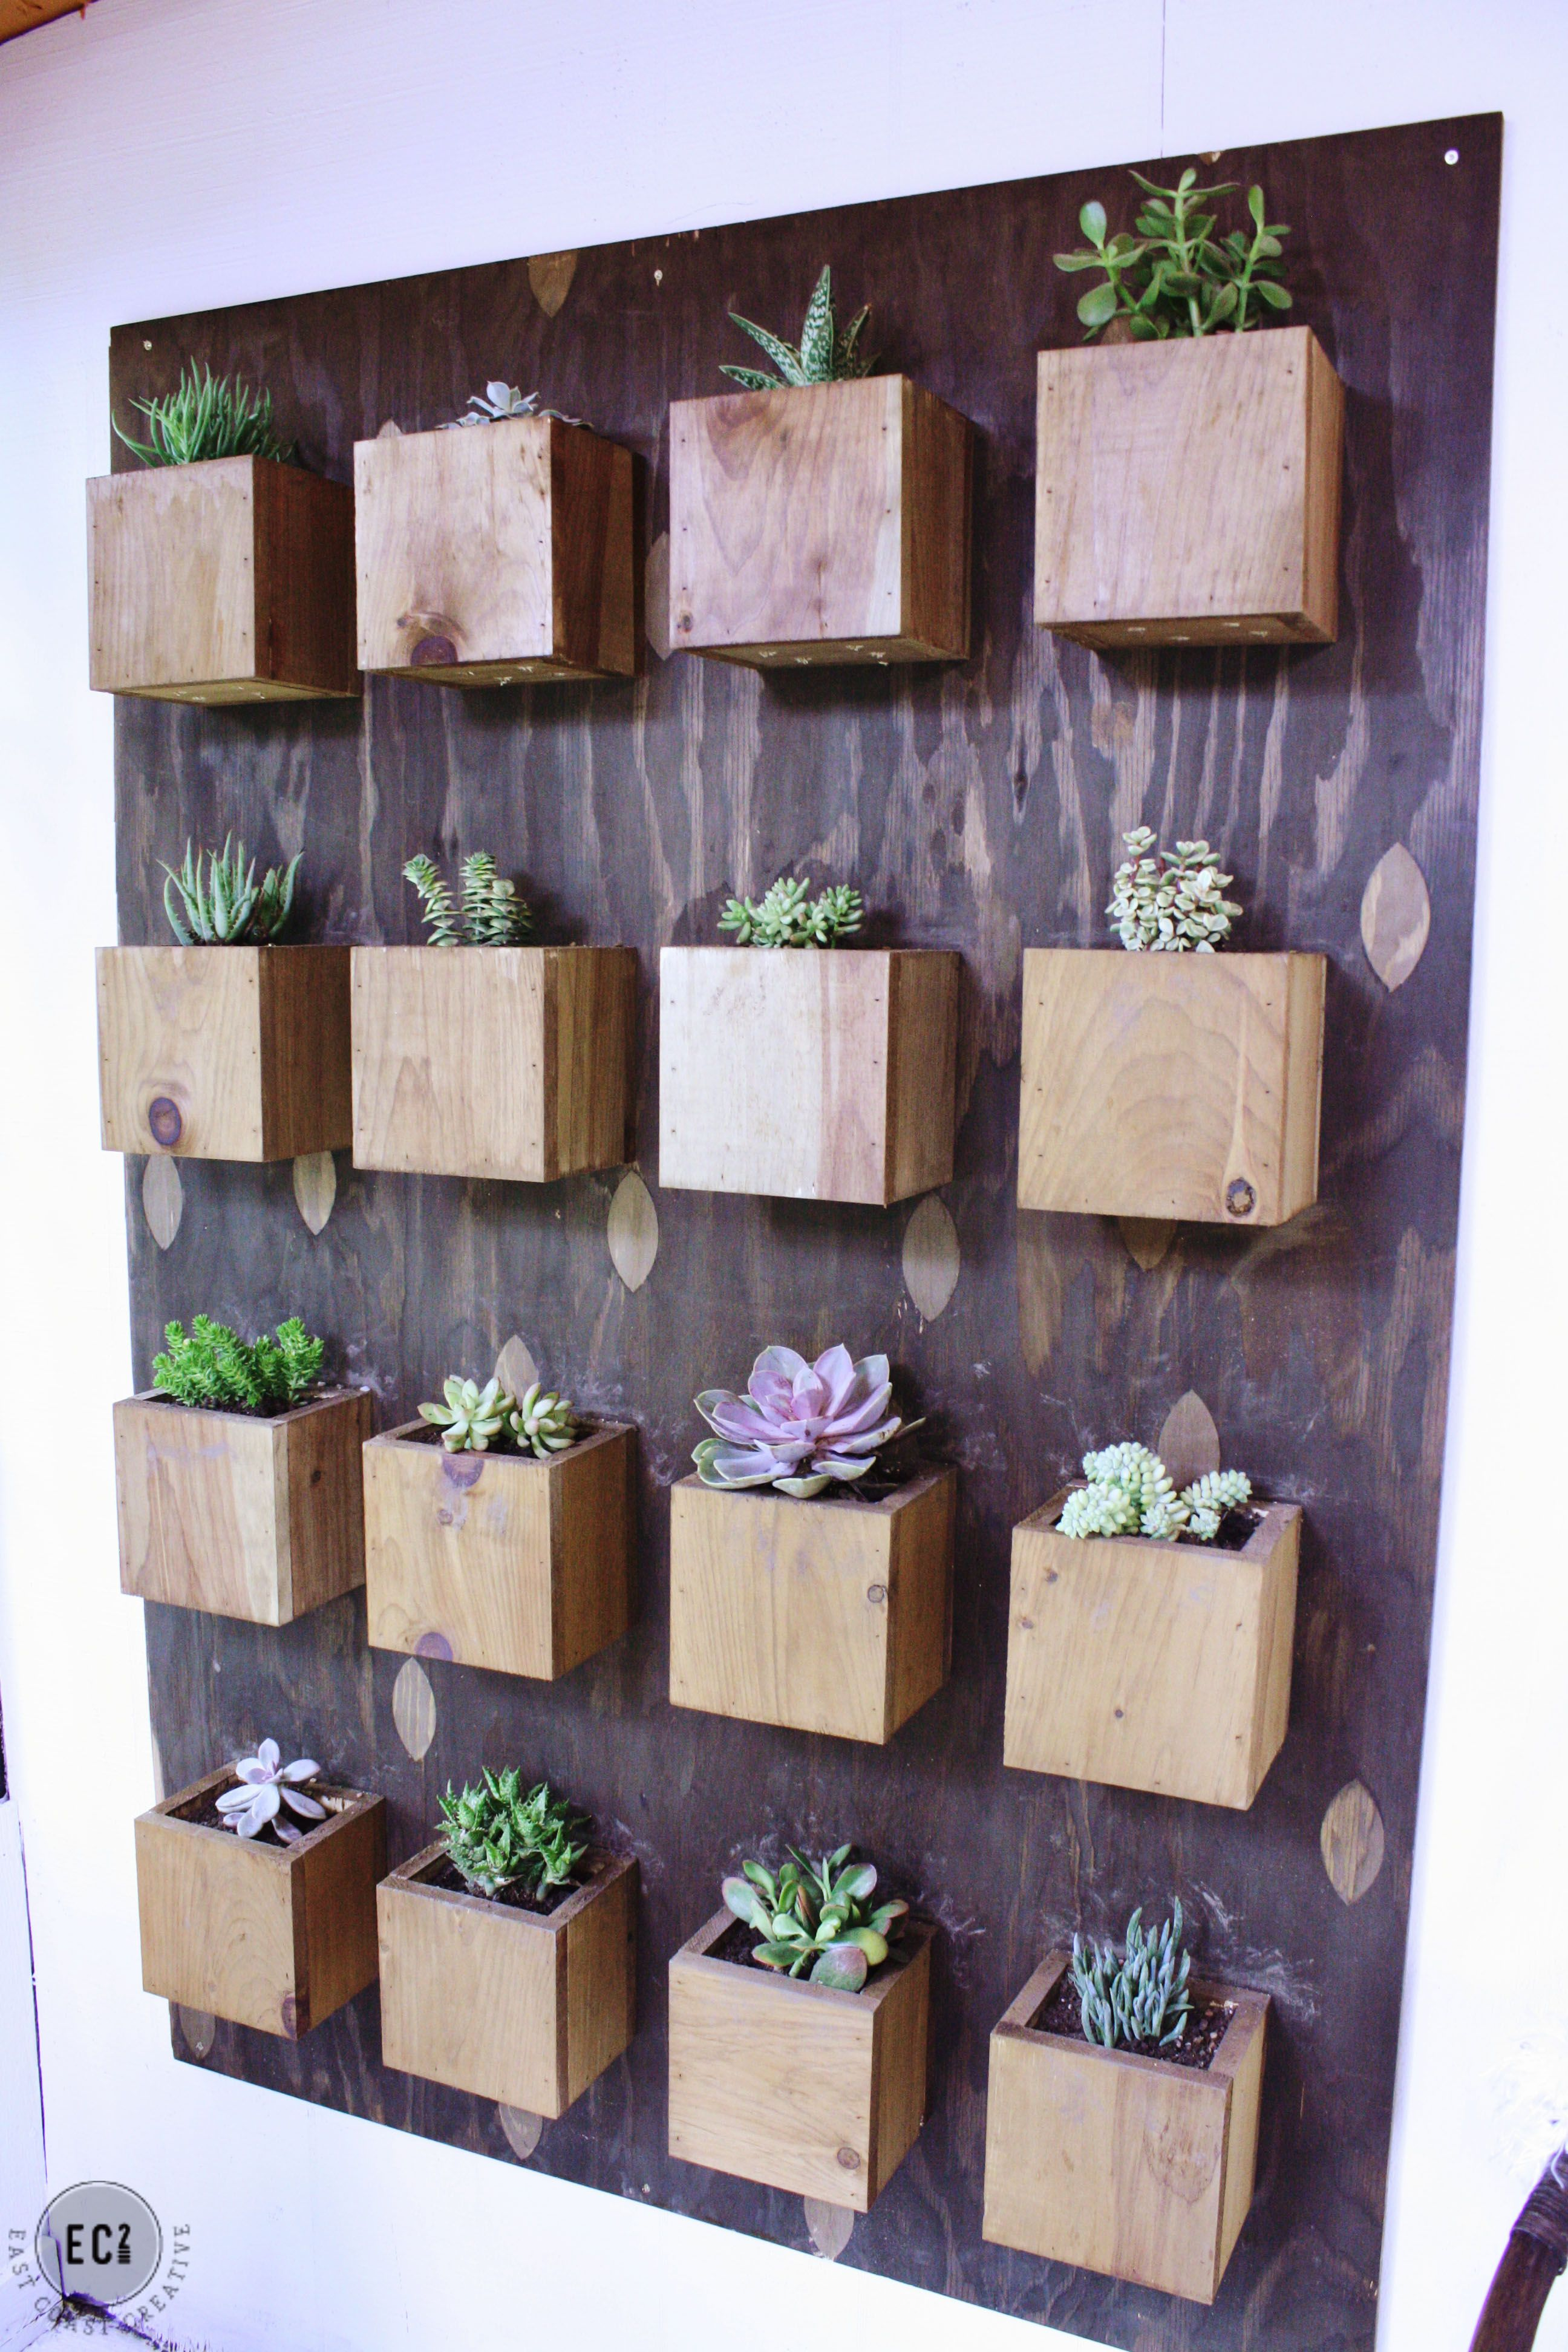 Urban gardening planters - Make Your Own Diy Garden Wall Perfect For Succulents Or Other Plants This Simple Tutorial